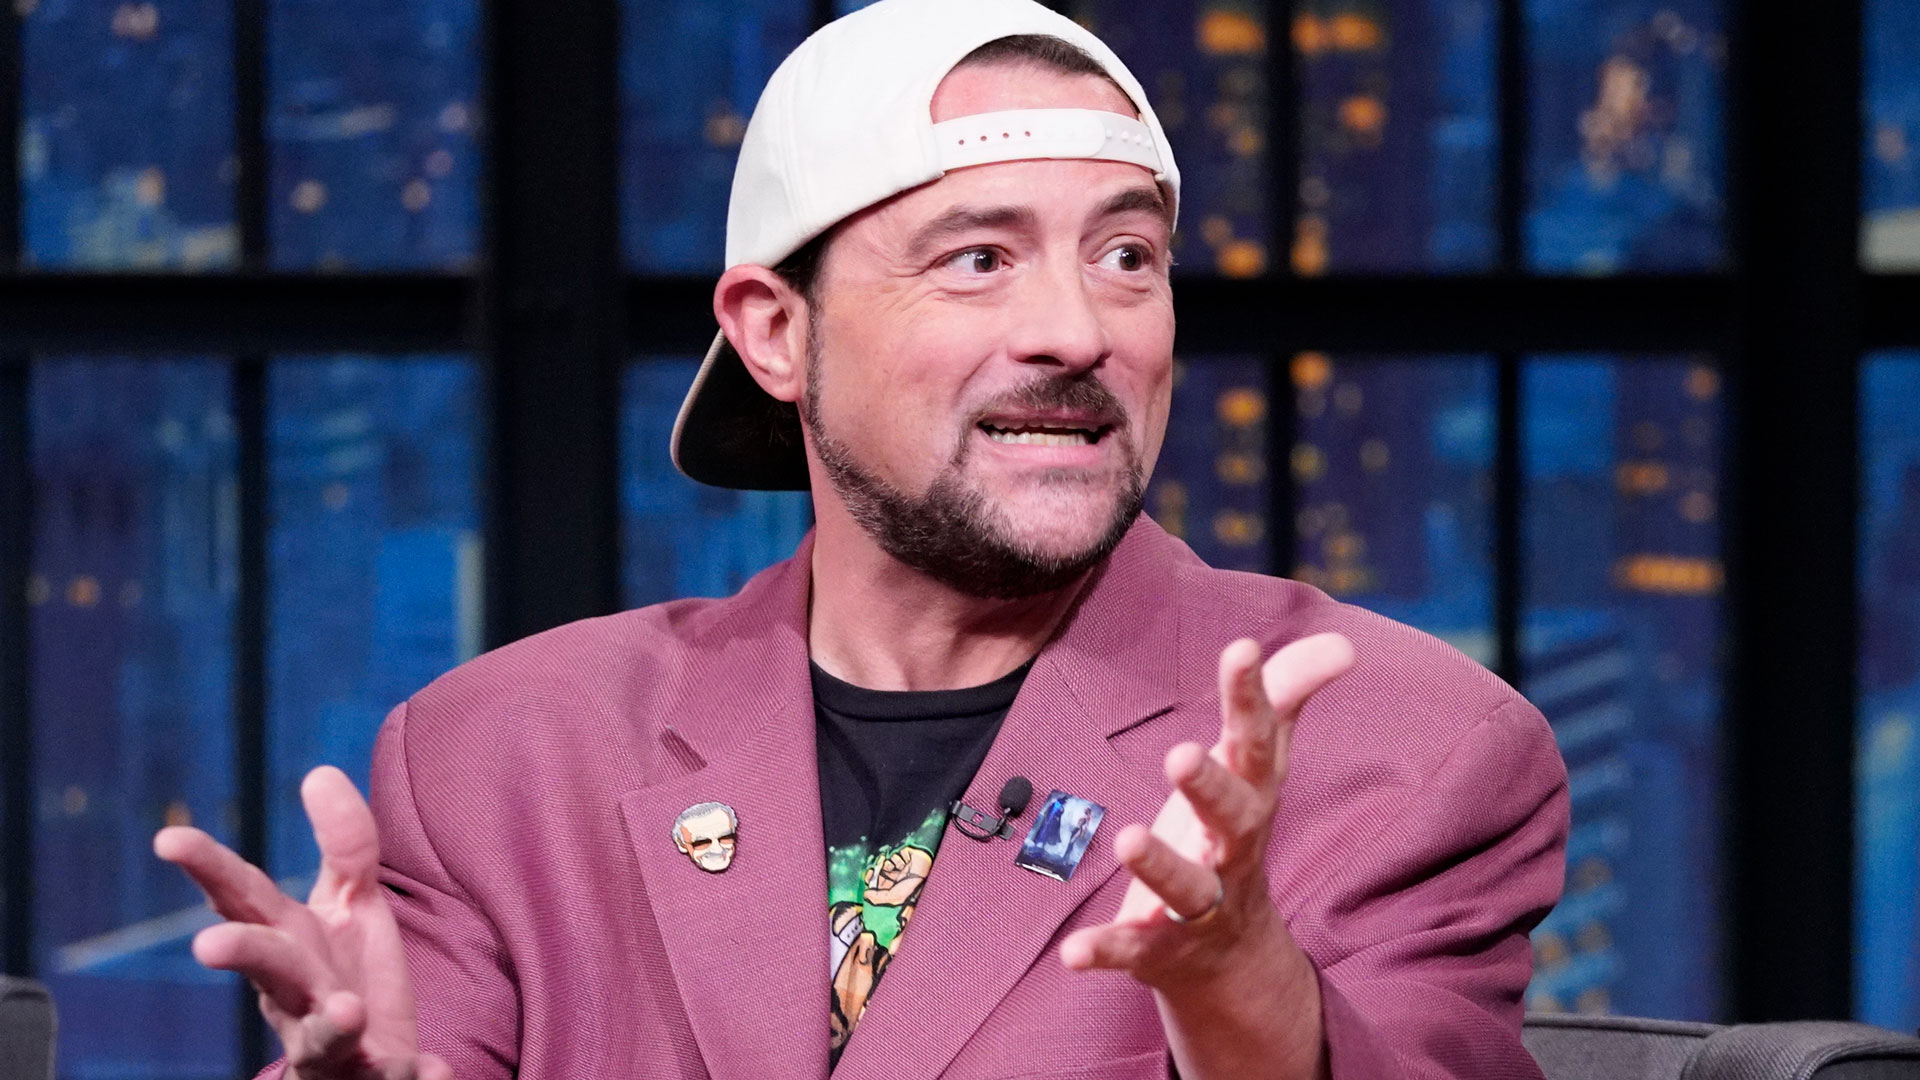 Kevin Smith Gets Seth to Invite Him Over for a Late Night Smoke Sesh